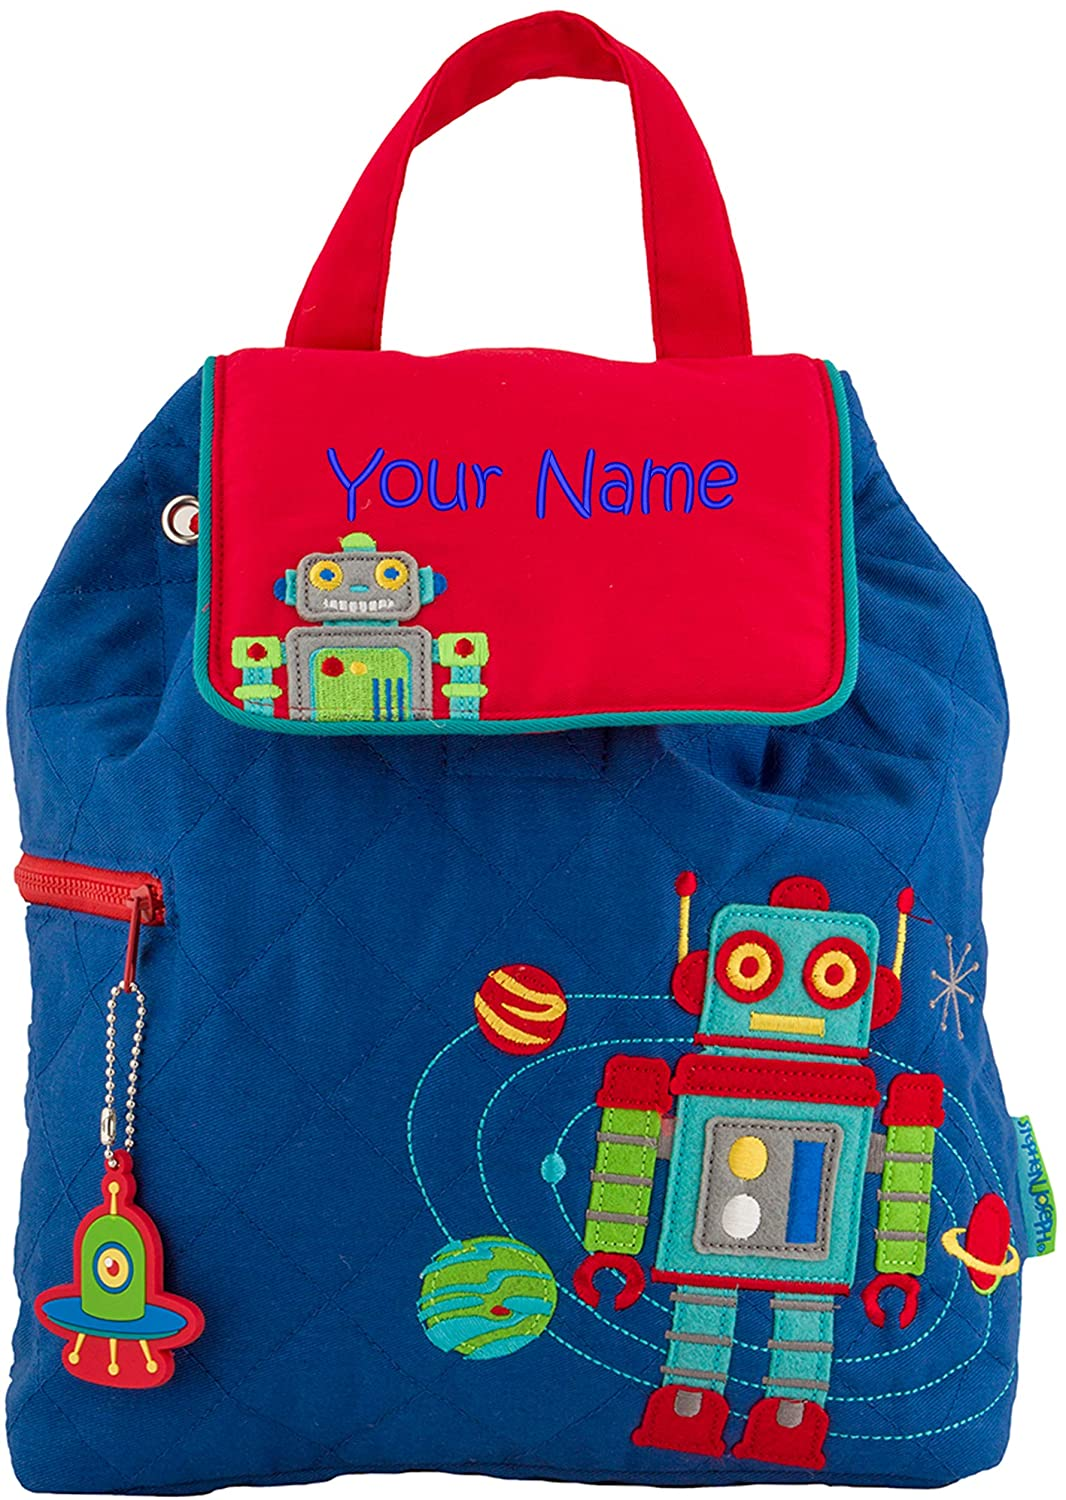 dfcc968f3f42 Personalized Stephen Joseph Robot Quilted Backpack with Embroidered Name